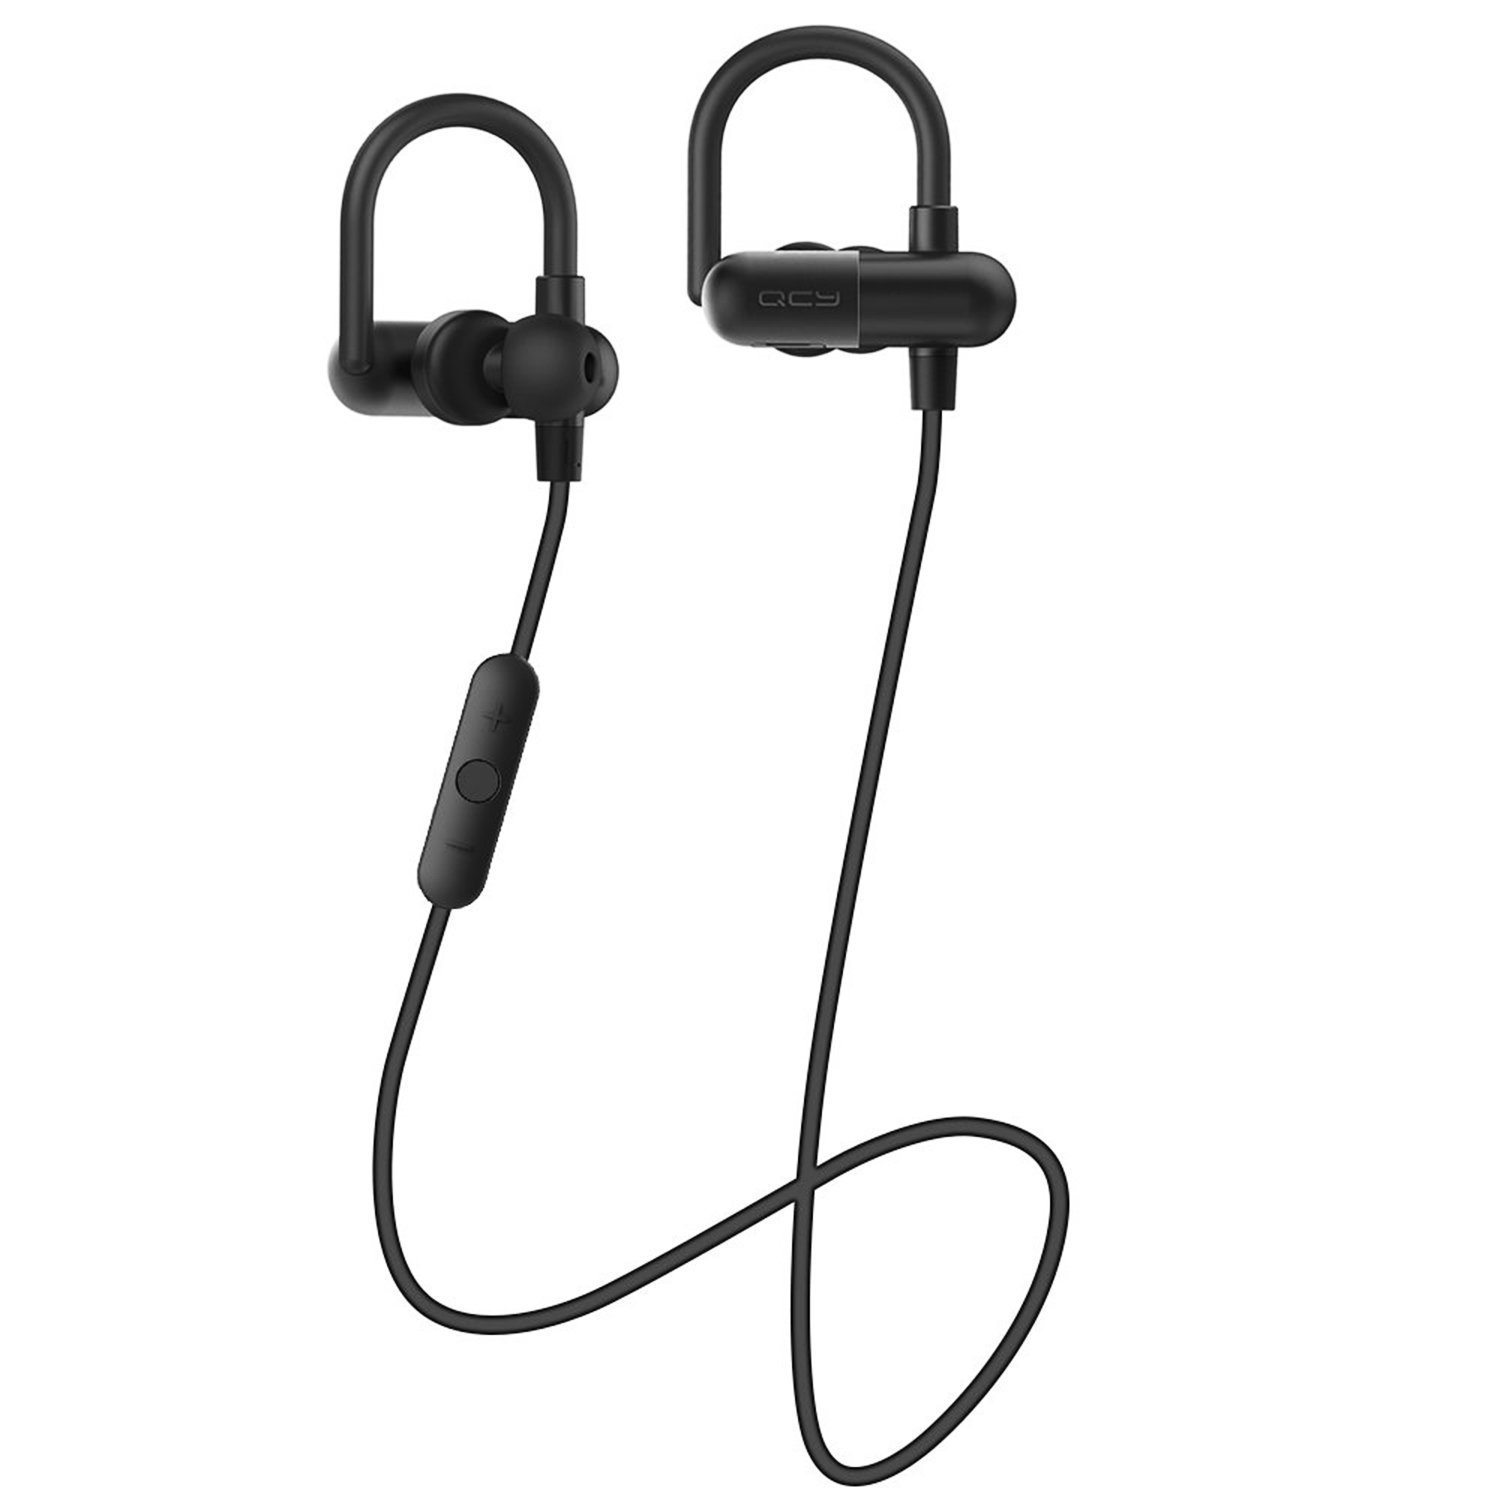 Earbuds bluetooth wireless over ear - wireless bluetooth earbuds for iphone 6 - Coupon For Amazon